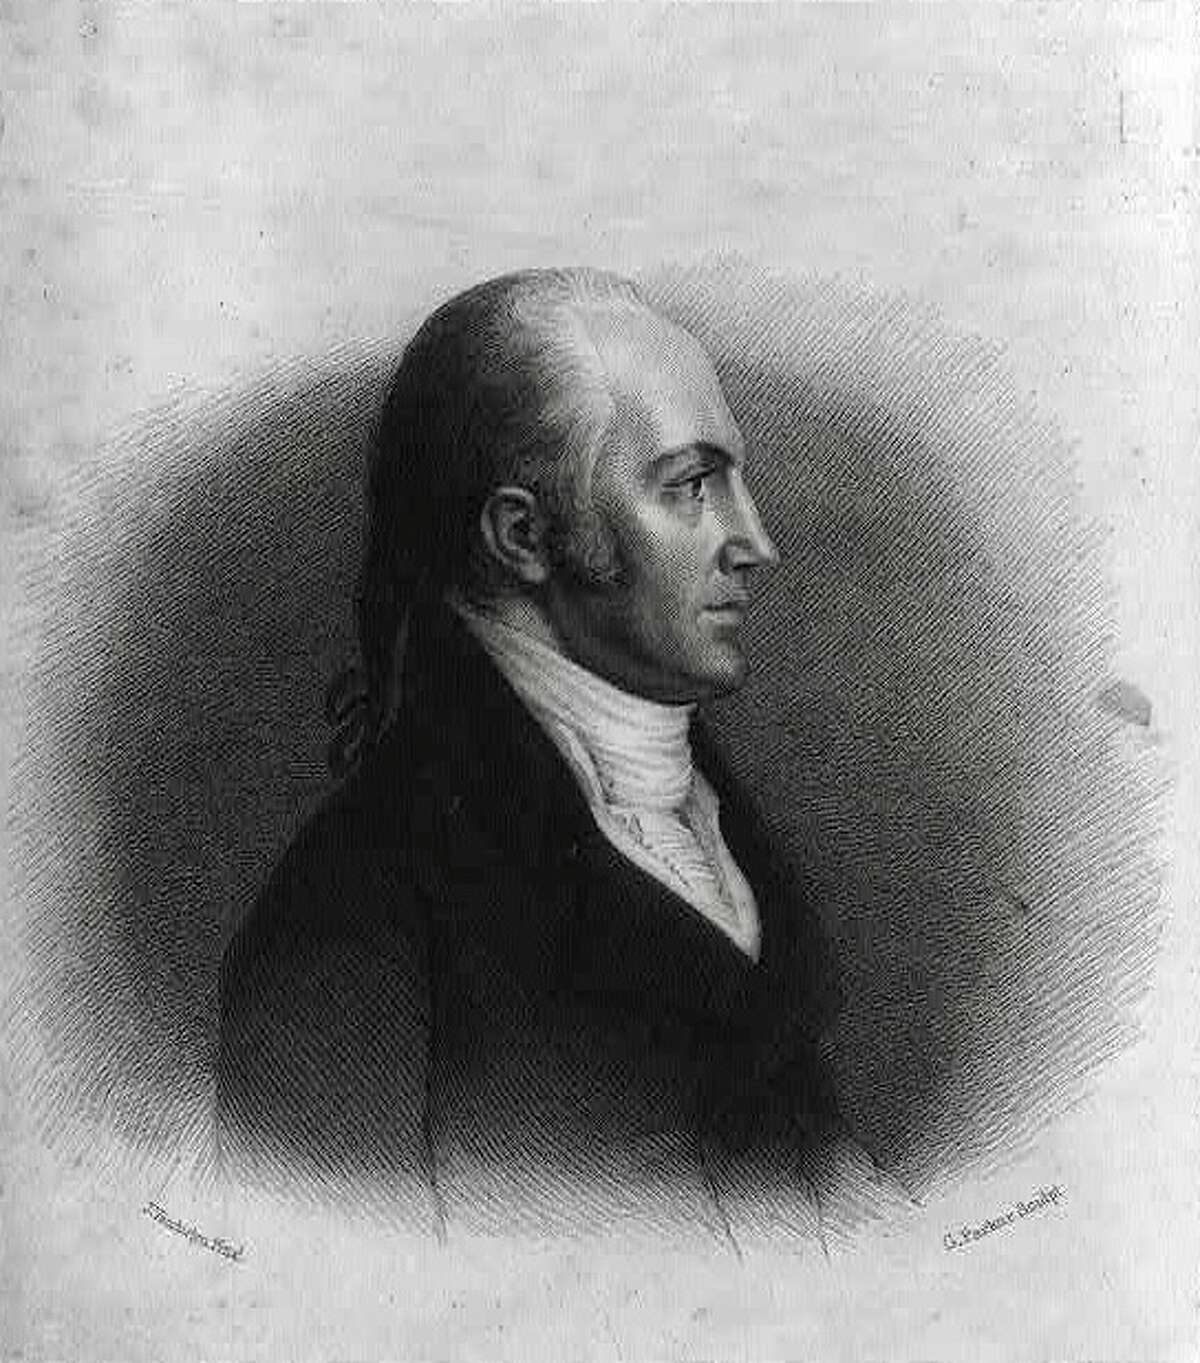 Aaron Burr served as vice president of the United States under President Thomas Jefferson. Burr is historically known for shooting and killing Alexander Hamilton in a duel, and conspiring to secede from the United States.